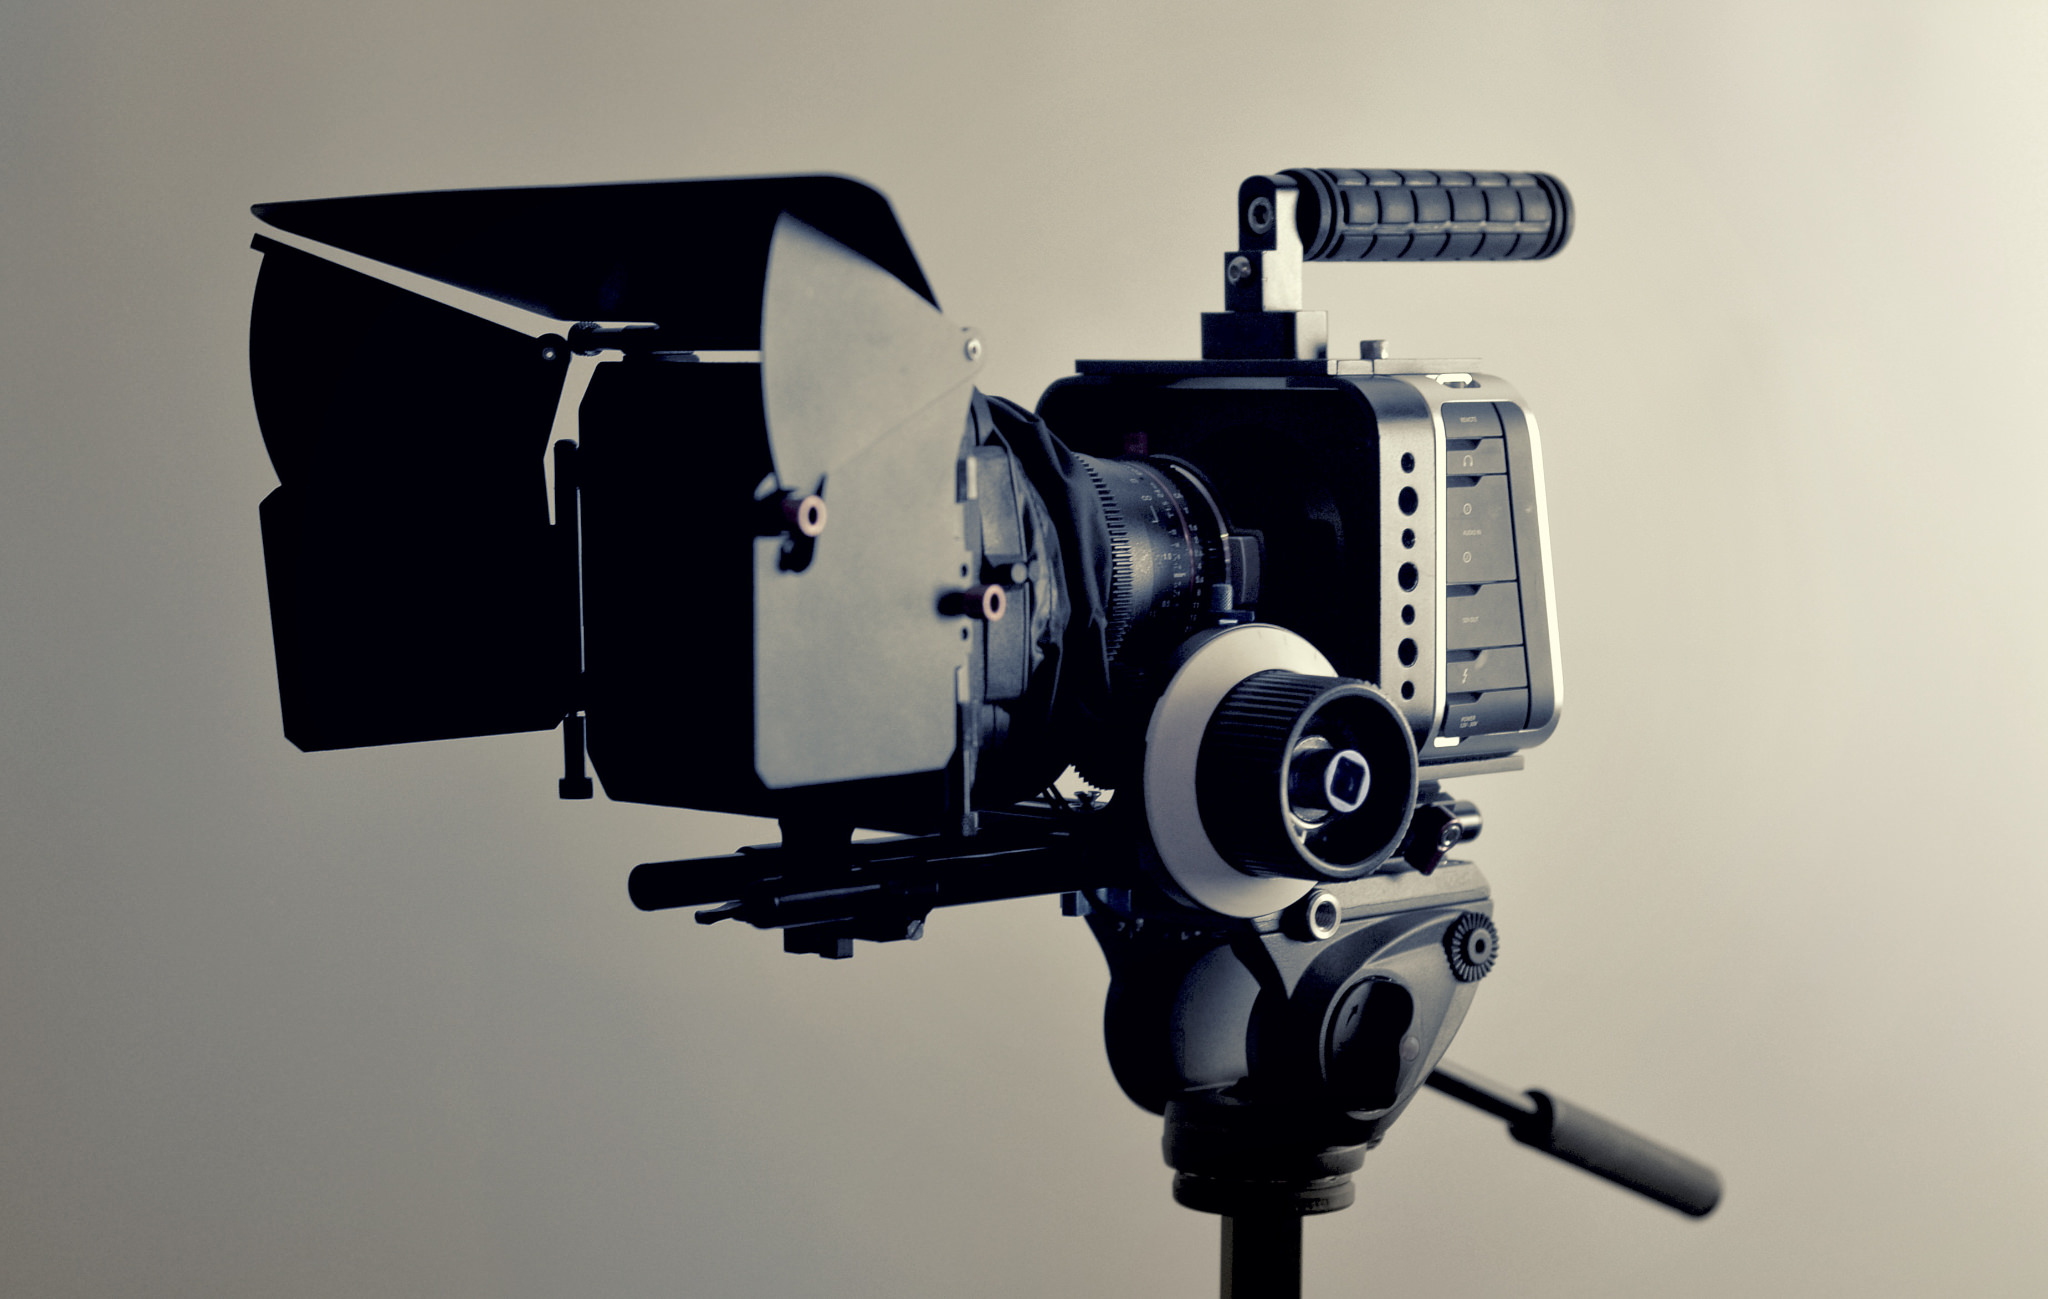 A camera used in filmmaking.